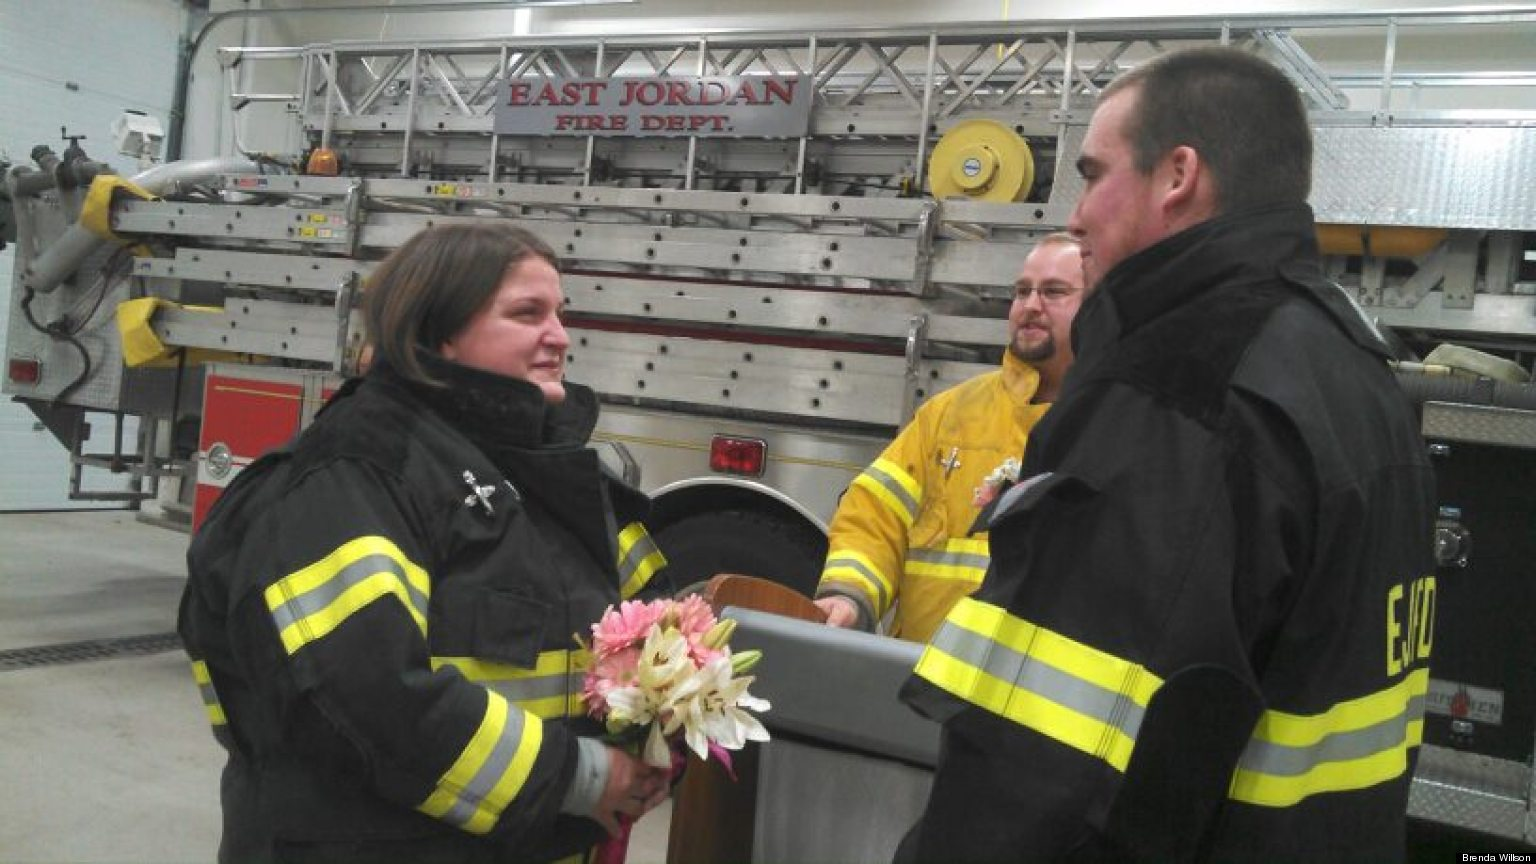 Firefighter Wedding Bride Surprised With At Fire Station